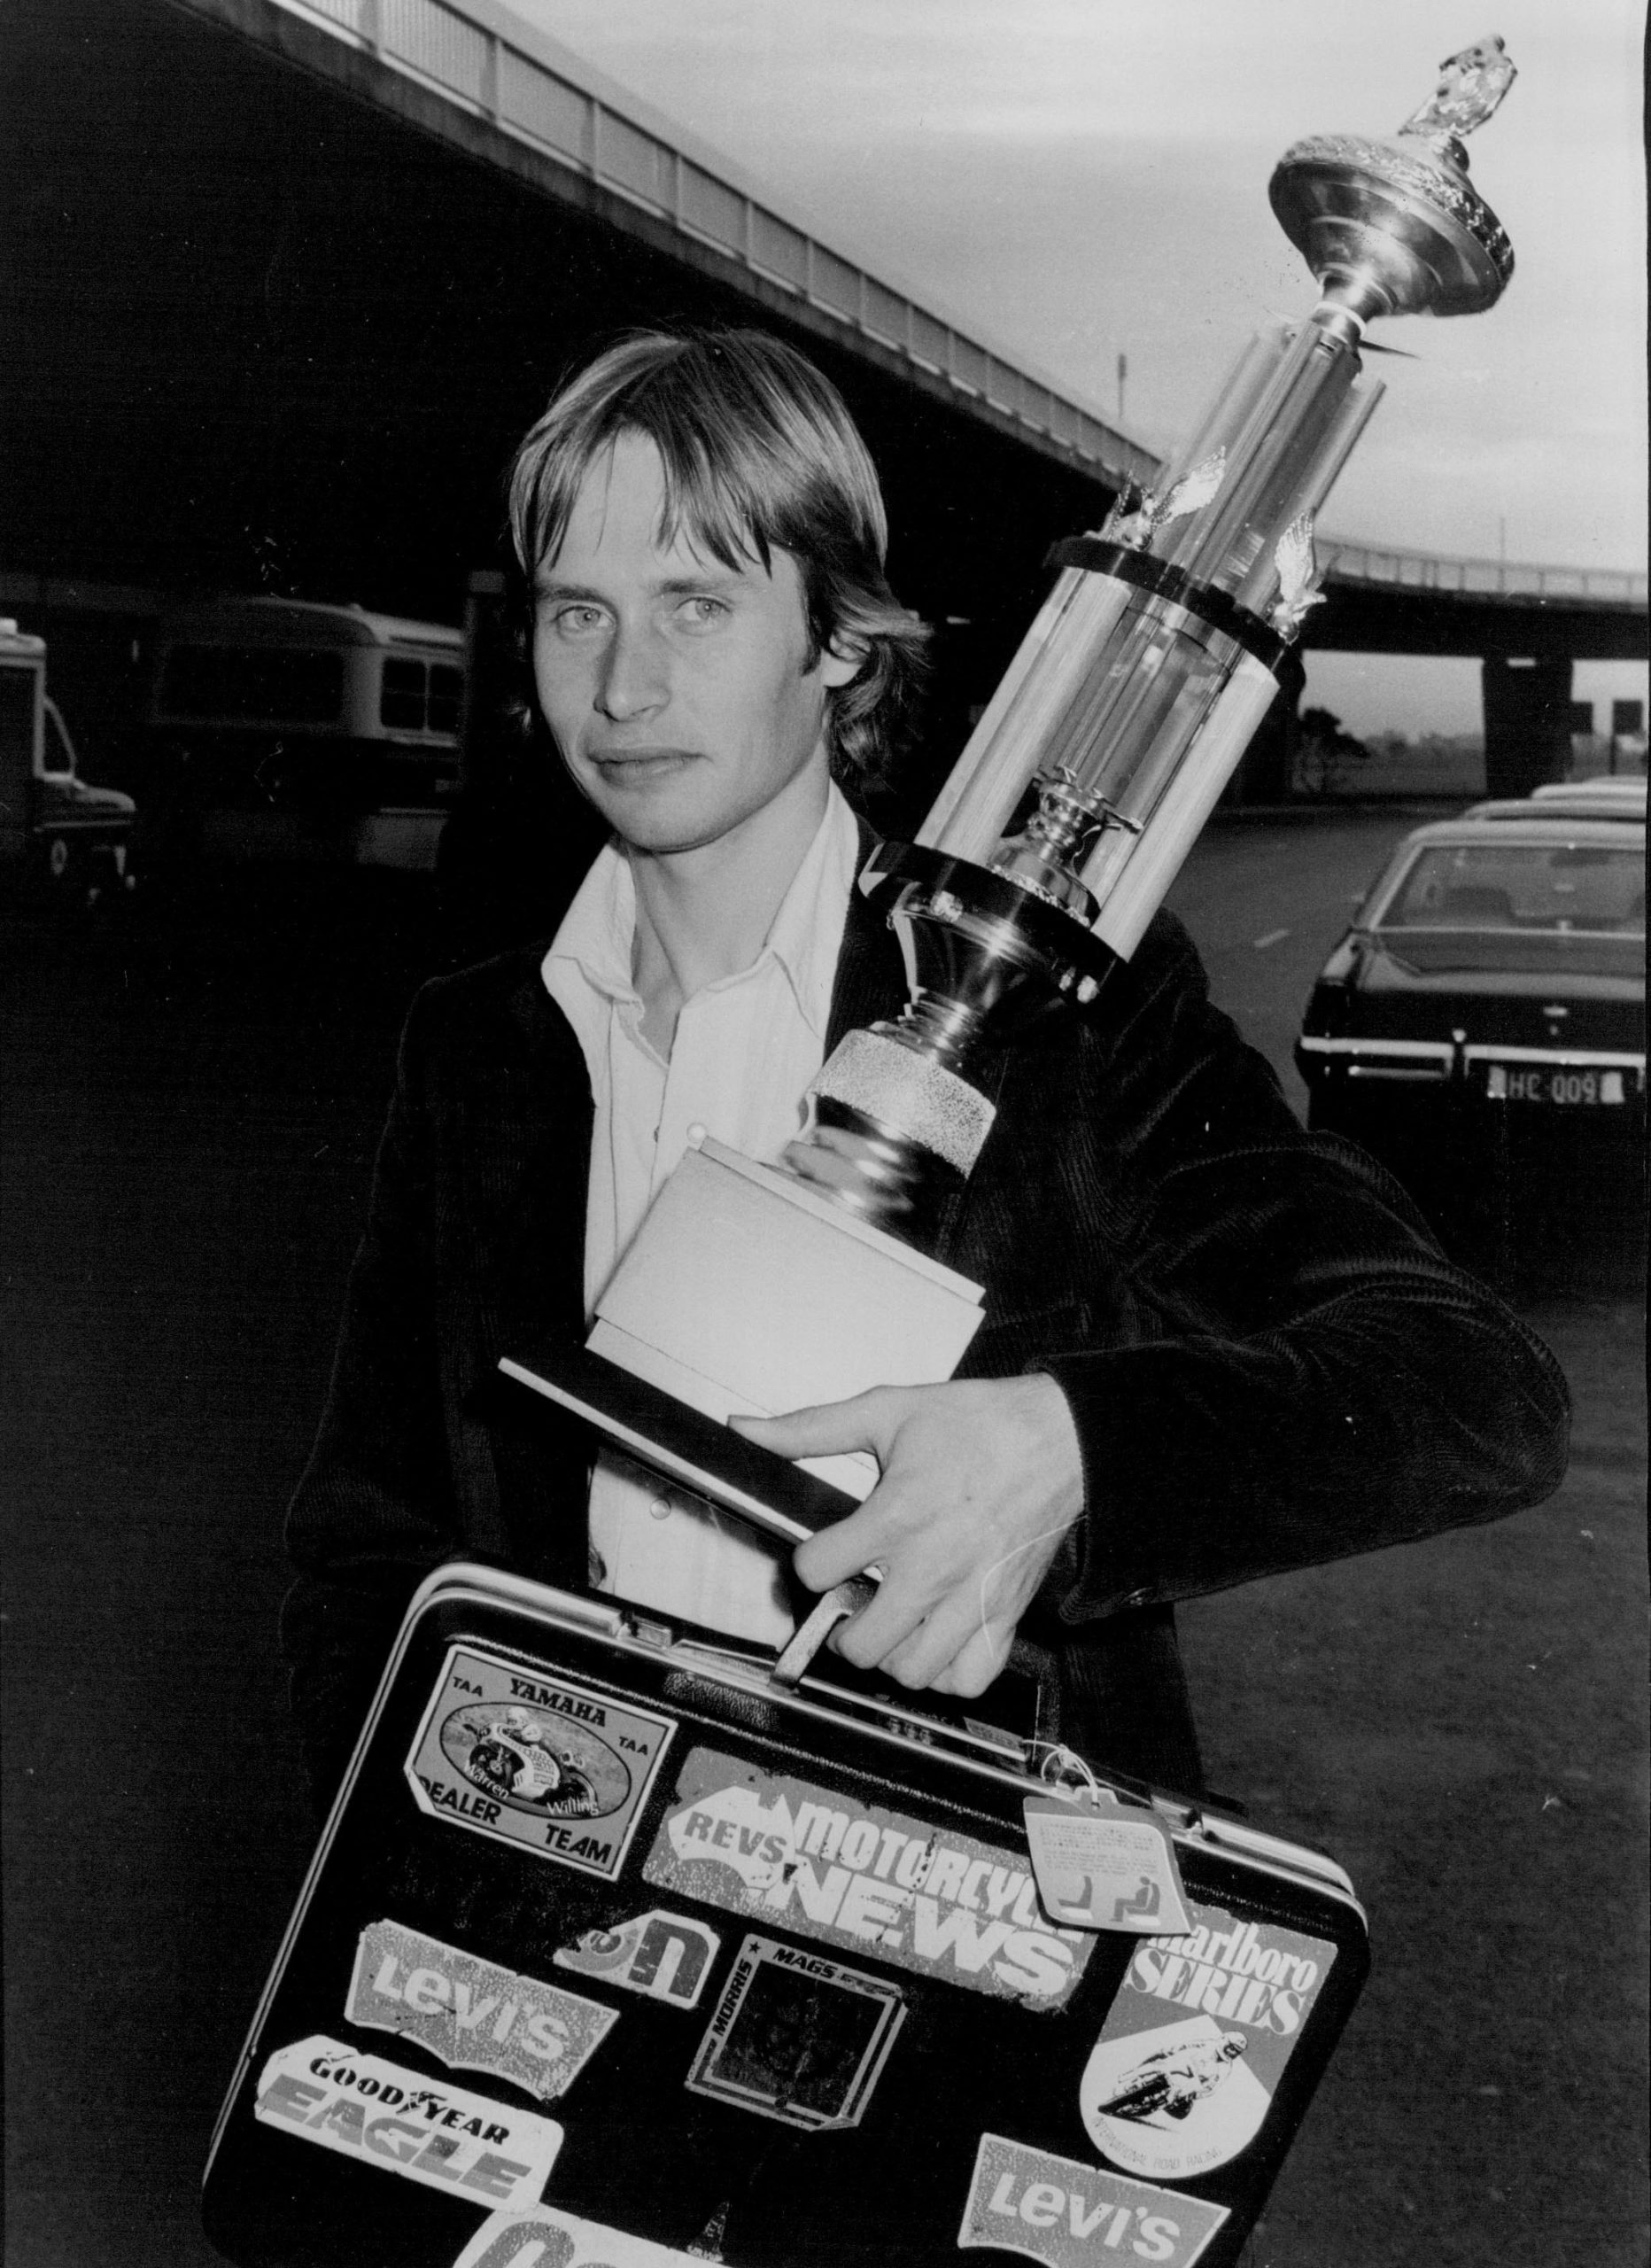 Warren-Willing-returns-to-Australia-after-a-motorcycle-race-in-Japan-May-1978